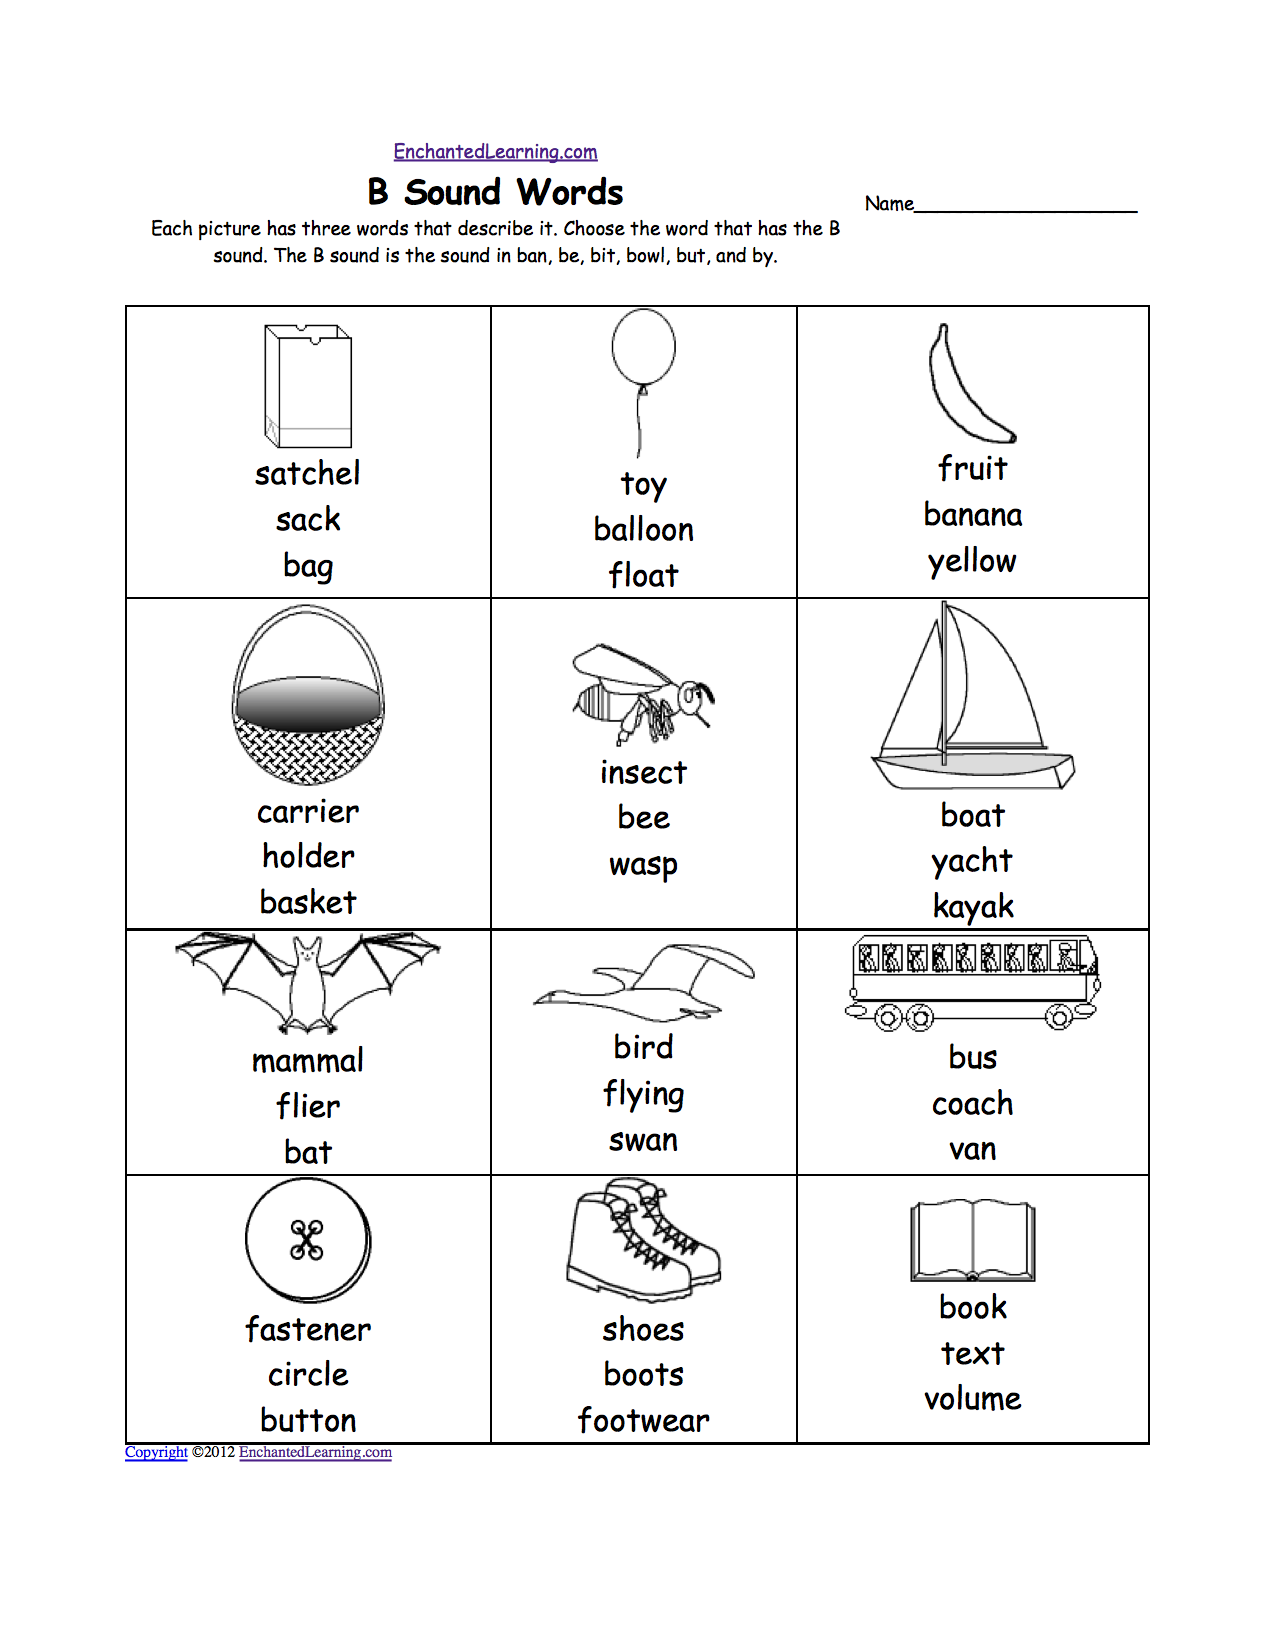 Aldiablosus  Outstanding Phonics Worksheets Multiple Choice Worksheets To Print  With Outstanding Quotbquot Sound Phonics Worksheet Multiple Choice Each Picture Has Three Words That Describe It Choose The Word That Has A Quotbquot Sound The Quotbquot Sound Is The Sound  With Endearing Elements Of Design Worksheets Also Printable Maths Worksheets For Grade  In Addition Grade  Graphing Worksheets And Line Graph Practice Worksheets As Well As Grammar Worksheets For Grade  Additionally Missing Vowels Worksheet From Enchantedlearningcom With Aldiablosus  Outstanding Phonics Worksheets Multiple Choice Worksheets To Print  With Endearing Quotbquot Sound Phonics Worksheet Multiple Choice Each Picture Has Three Words That Describe It Choose The Word That Has A Quotbquot Sound The Quotbquot Sound Is The Sound  And Outstanding Elements Of Design Worksheets Also Printable Maths Worksheets For Grade  In Addition Grade  Graphing Worksheets From Enchantedlearningcom